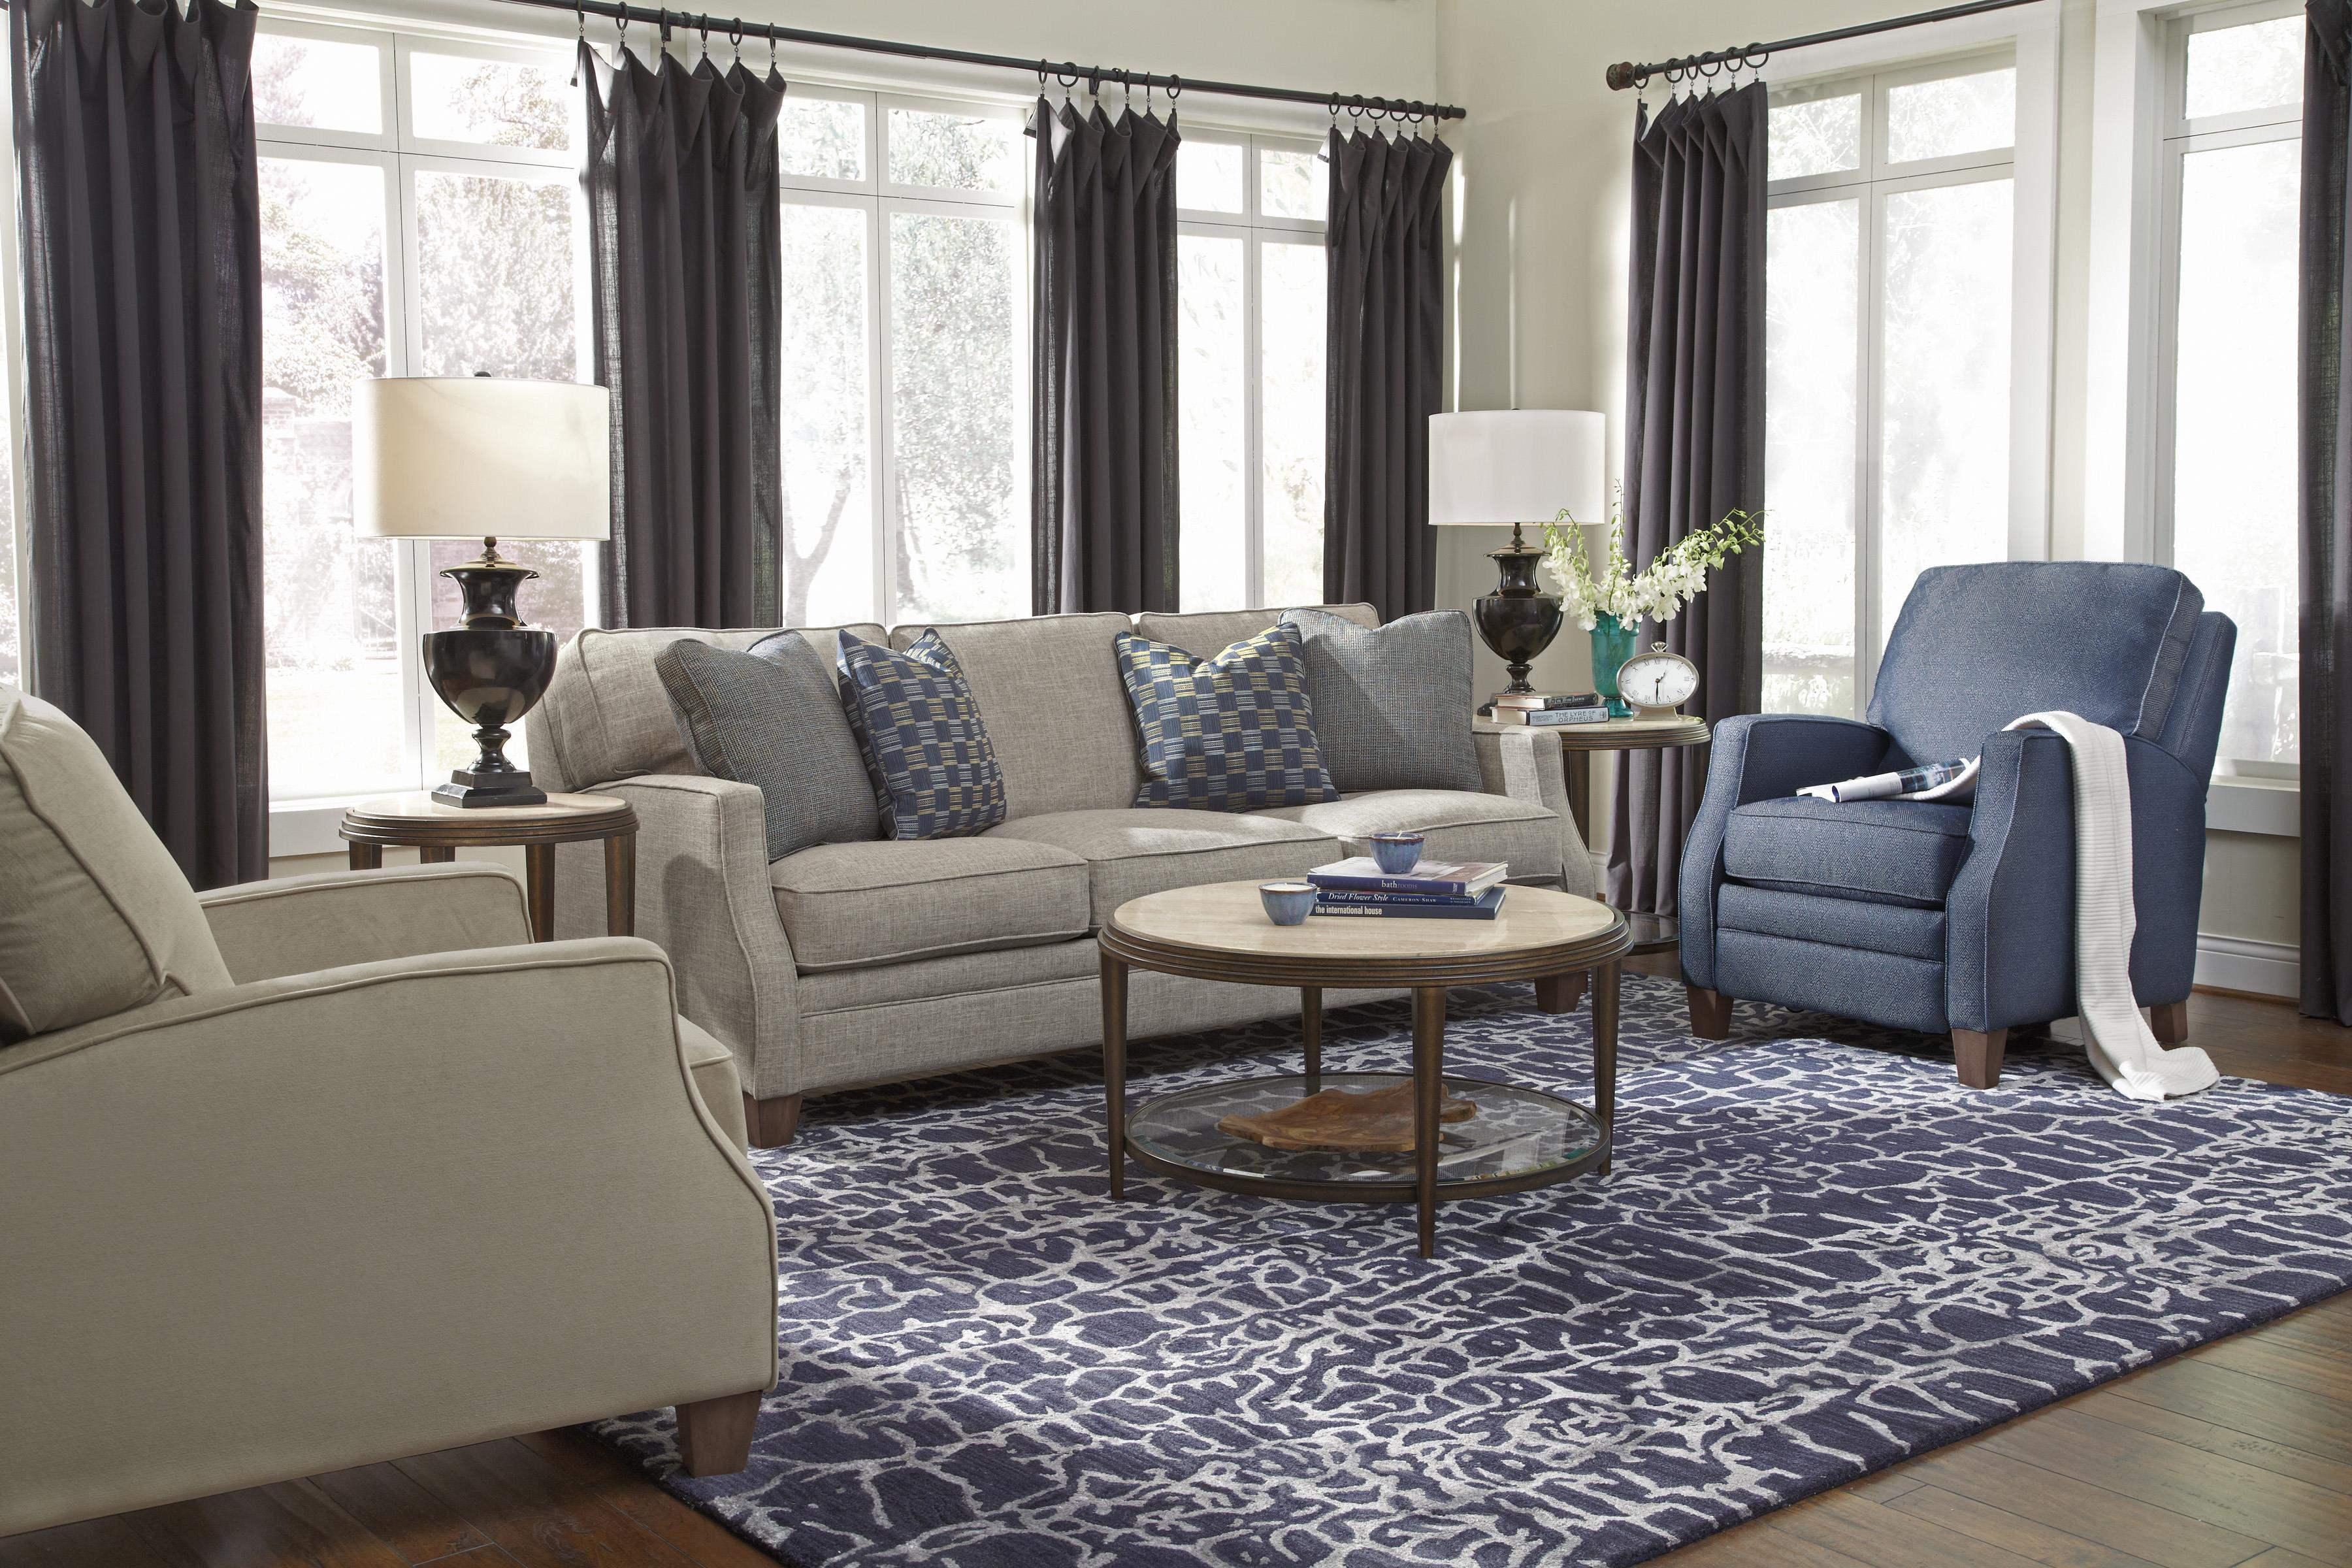 Flexsteel Lenox Three Piece Sectional Sofa with RAF Loveseat     Flexsteel Lenox Three Piece Sectional Sofa with RAF Loveseat   Wayside  Furniture   Sofa Sectional